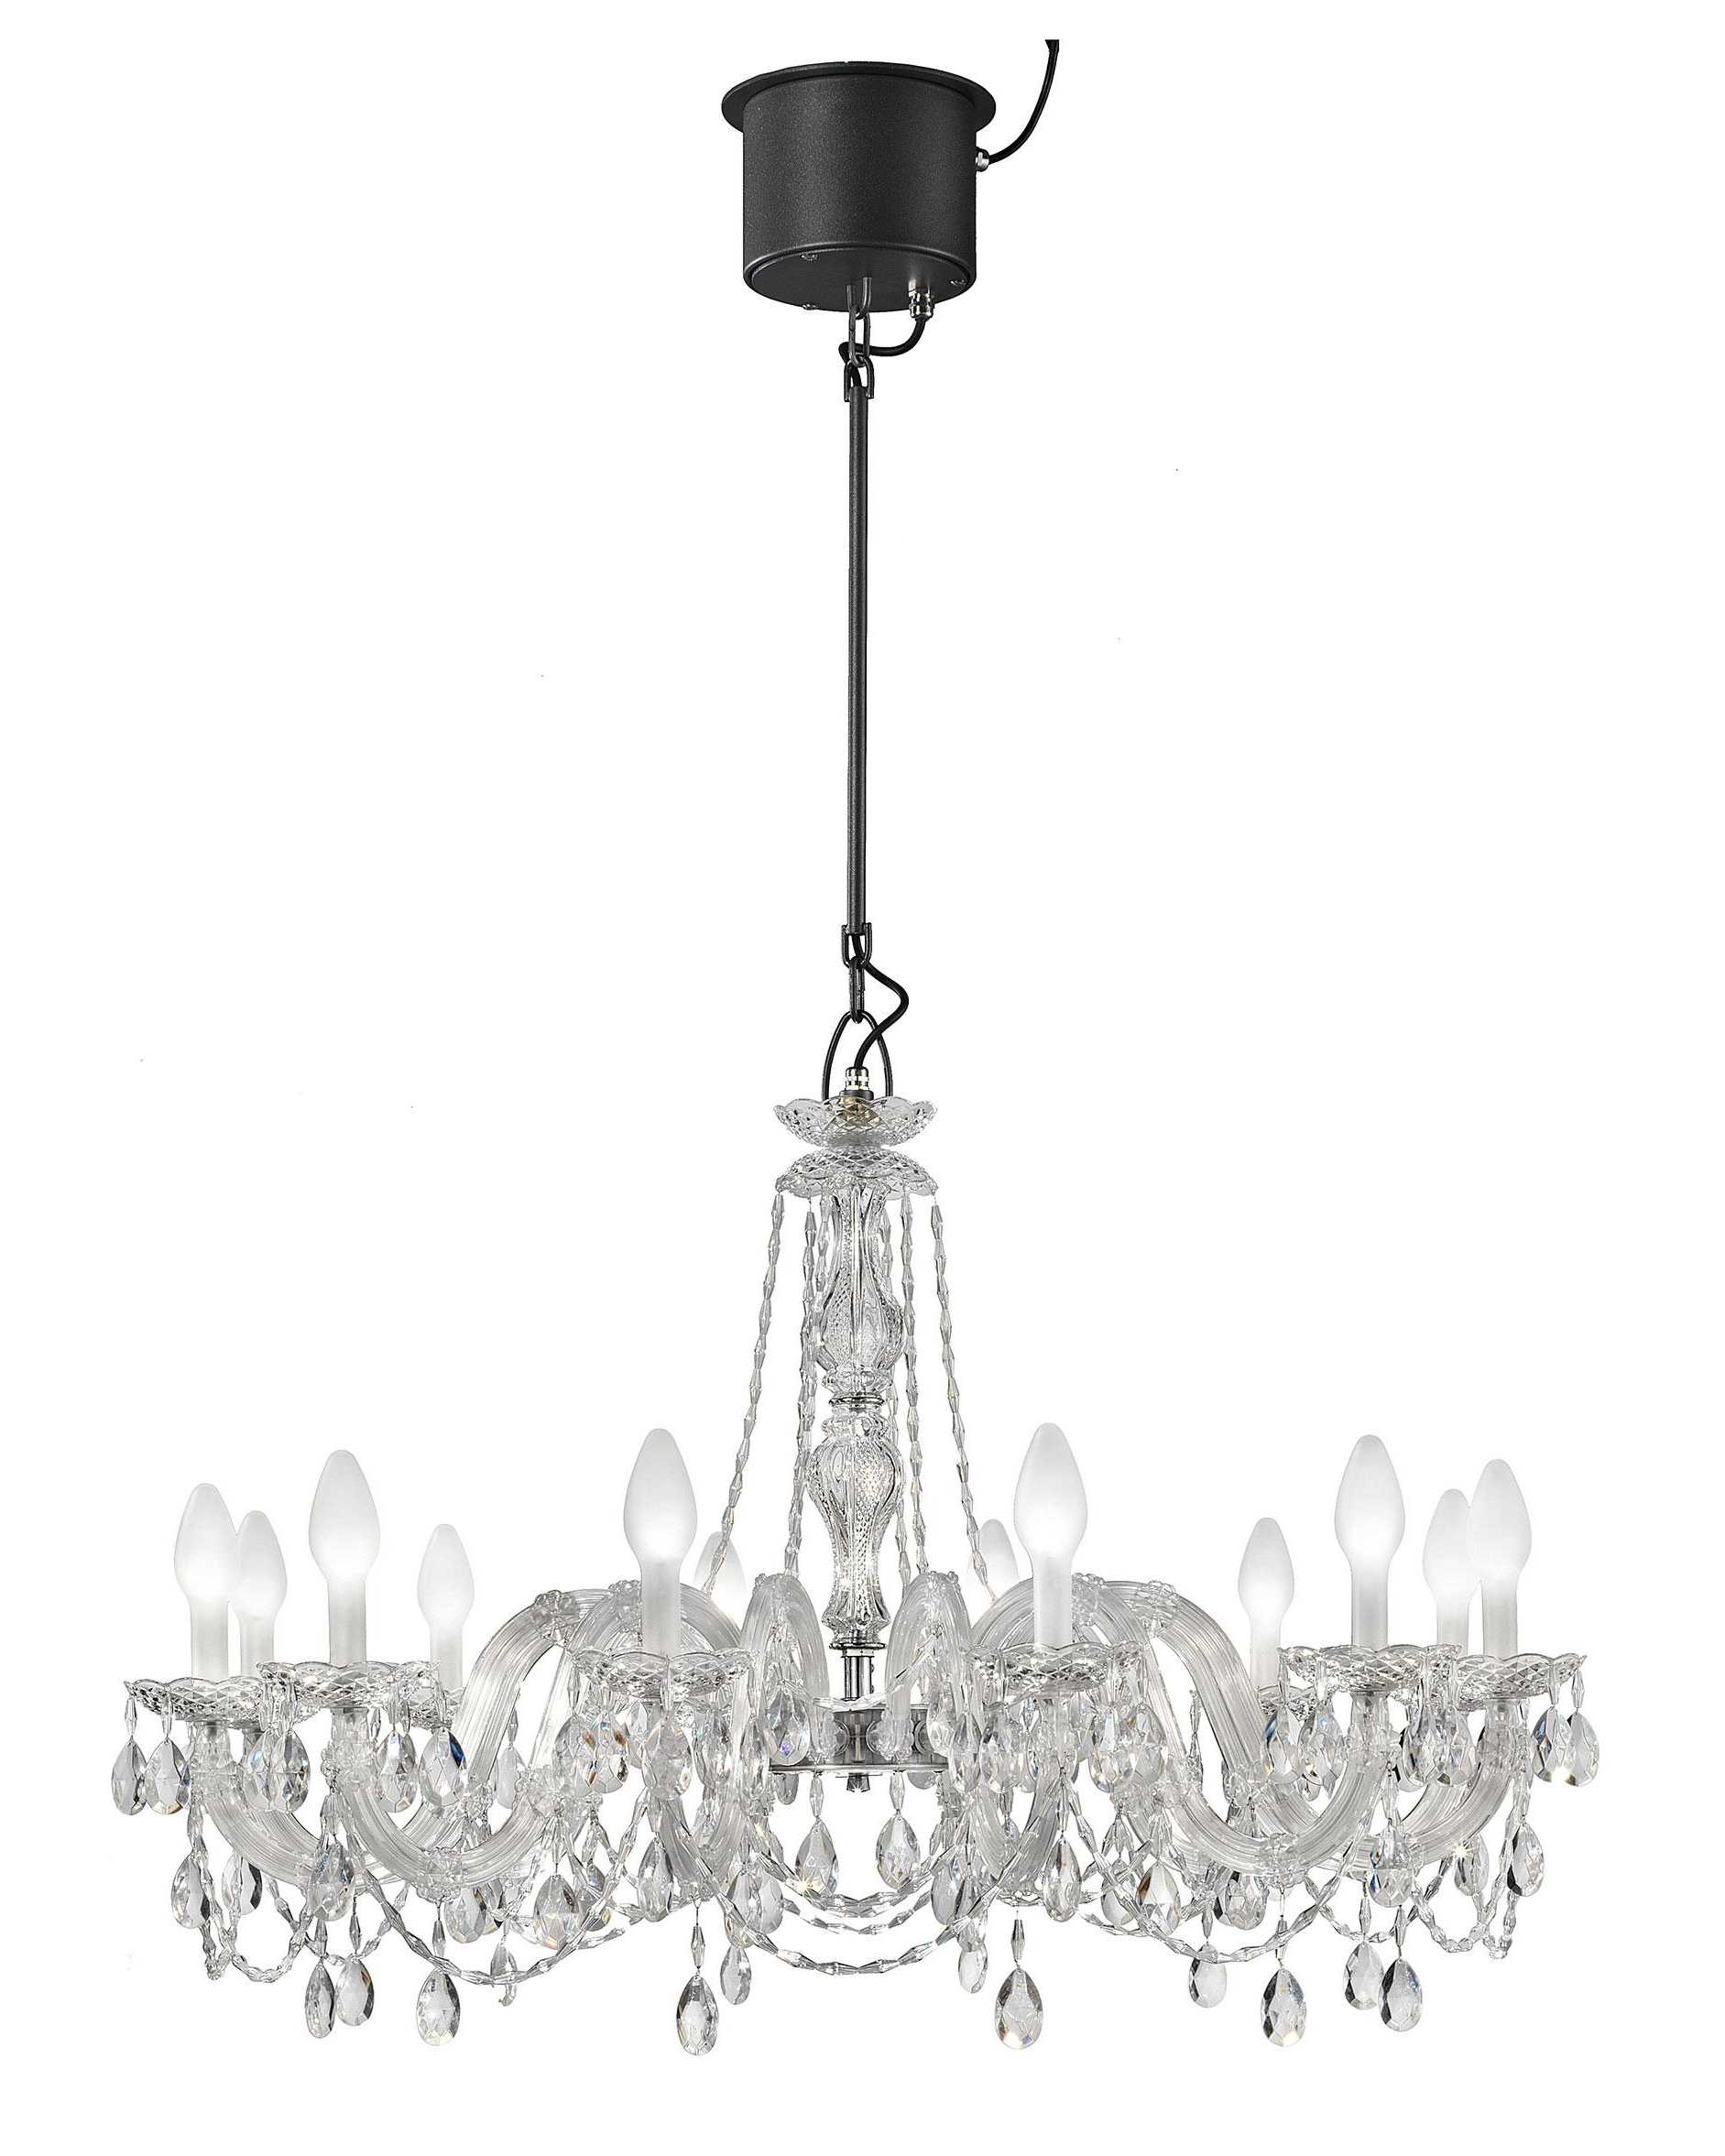 Fashionable Chandeliers : Shabby Chic Chandeliers Best Of Chandeliers Design Throughout Small Shabby Chic Chandelier (View 4 of 15)